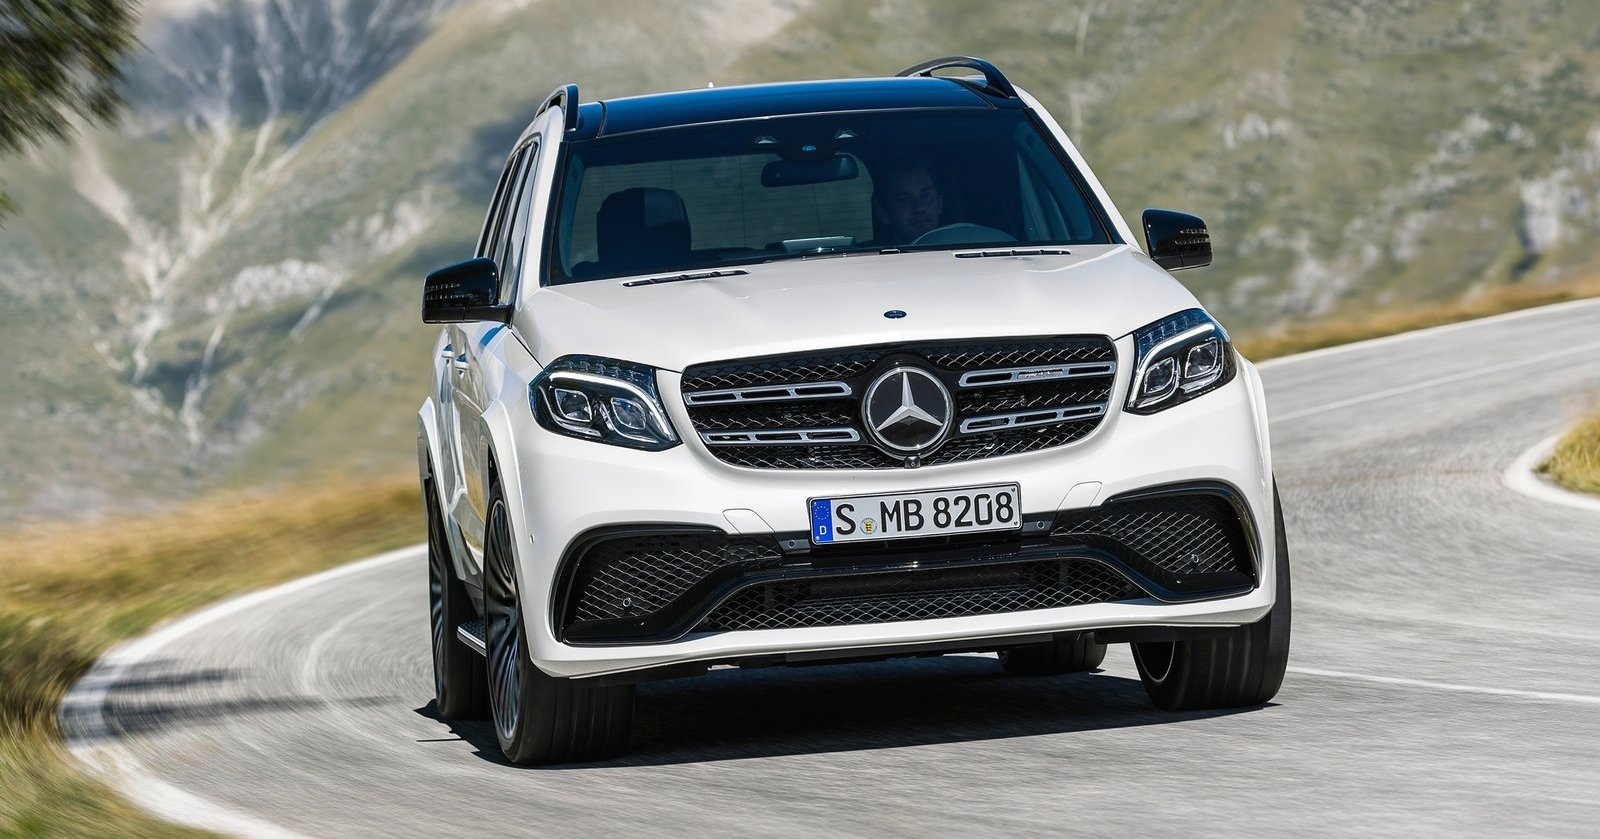 2016 mercedes benz gls pricing and specifications photos for Mercedes benz gls 2016